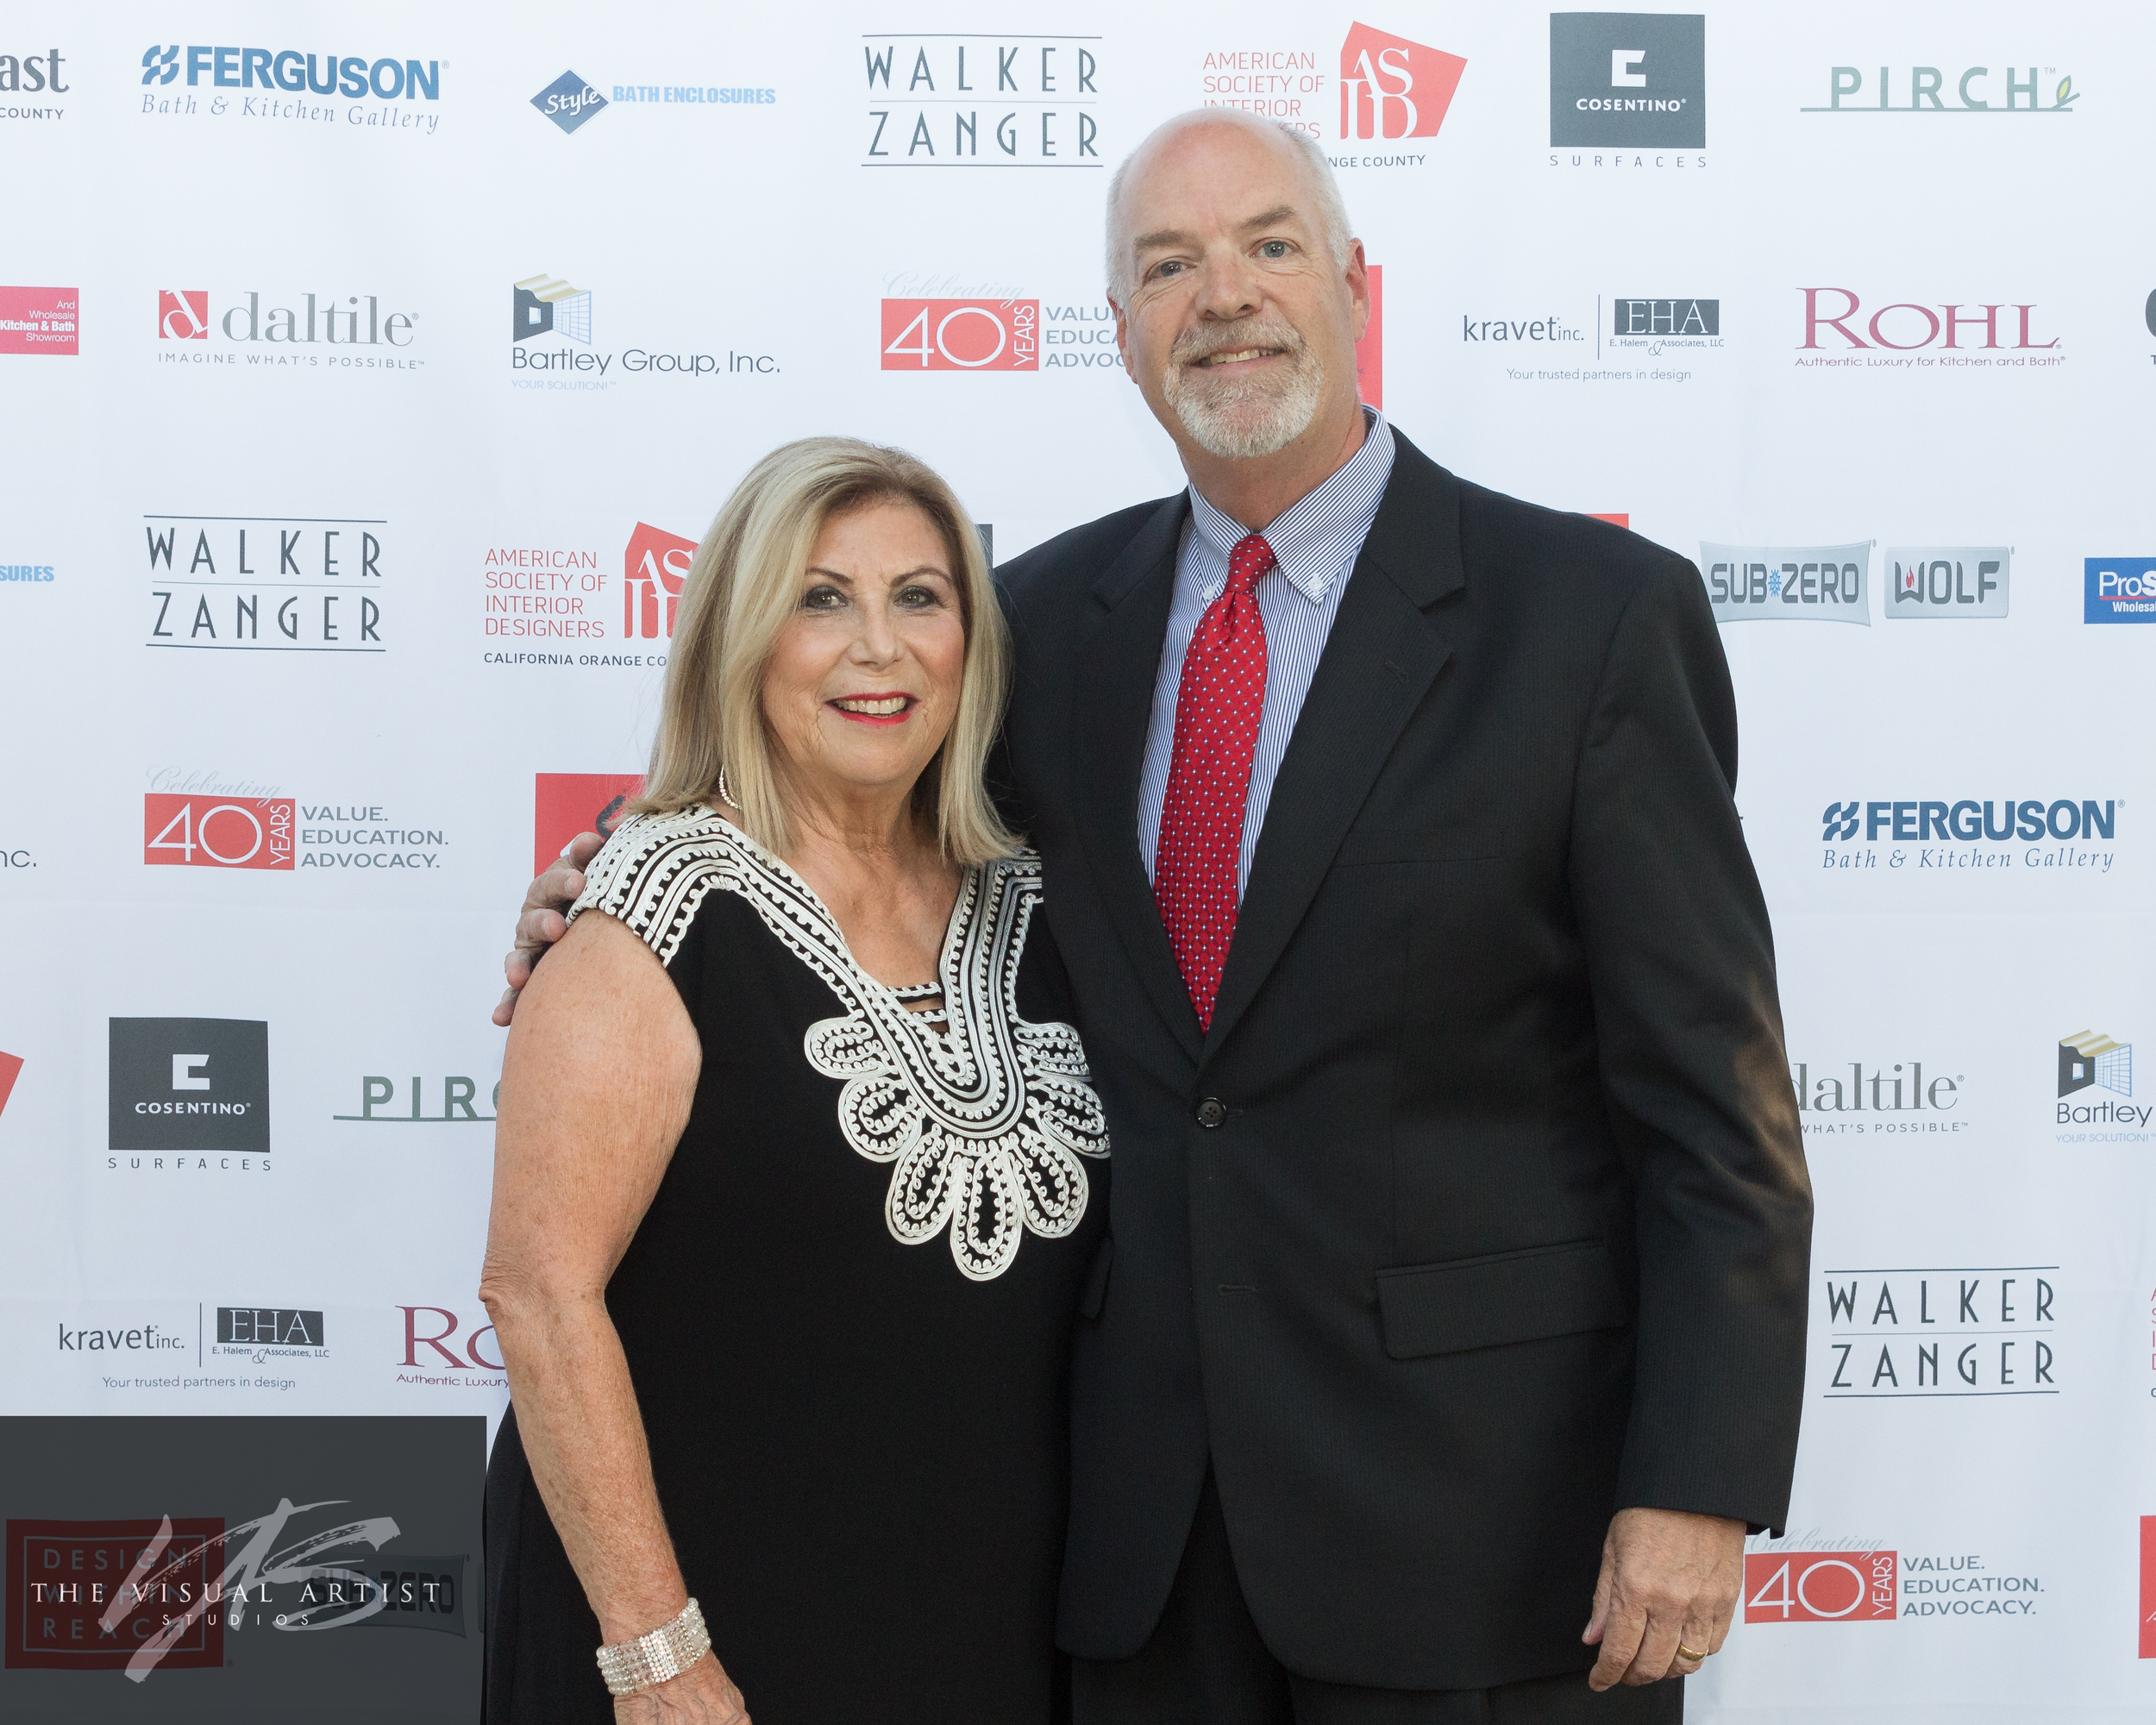 Jamie Namanny, Allied ASID & Husband